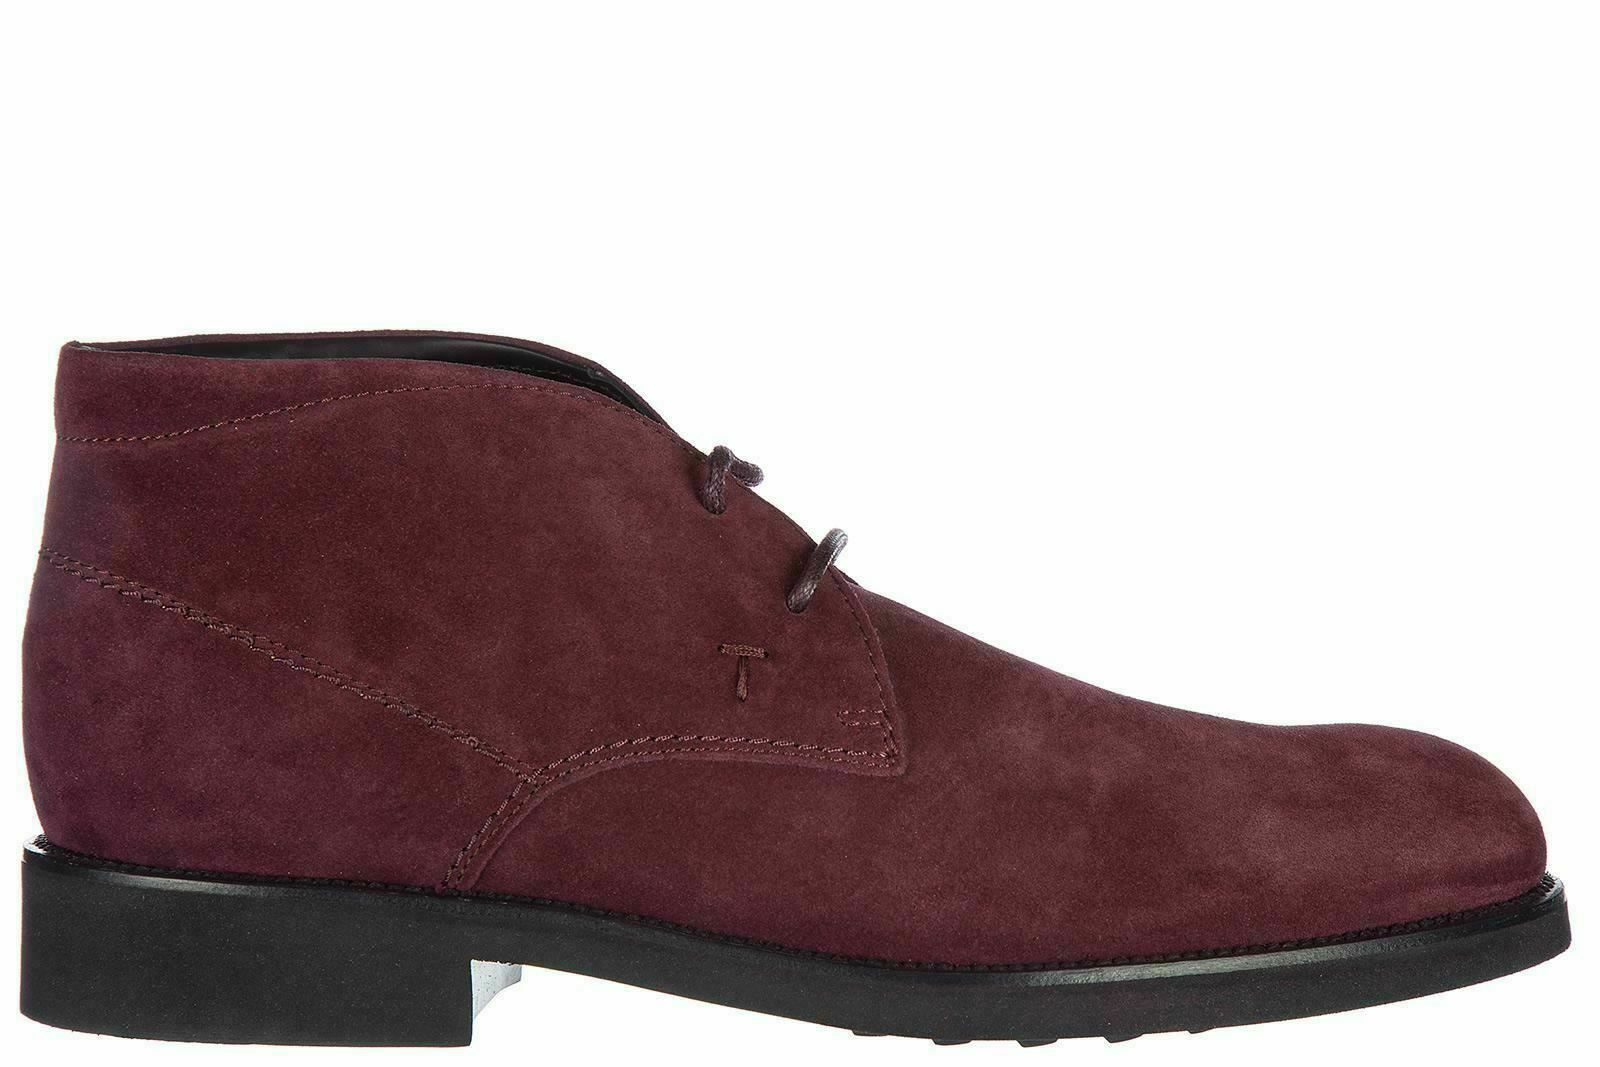 Tod's Men's Maroon Suede Lace Up Ankle Boots Shoes (6.5 UK / 7.5 US)